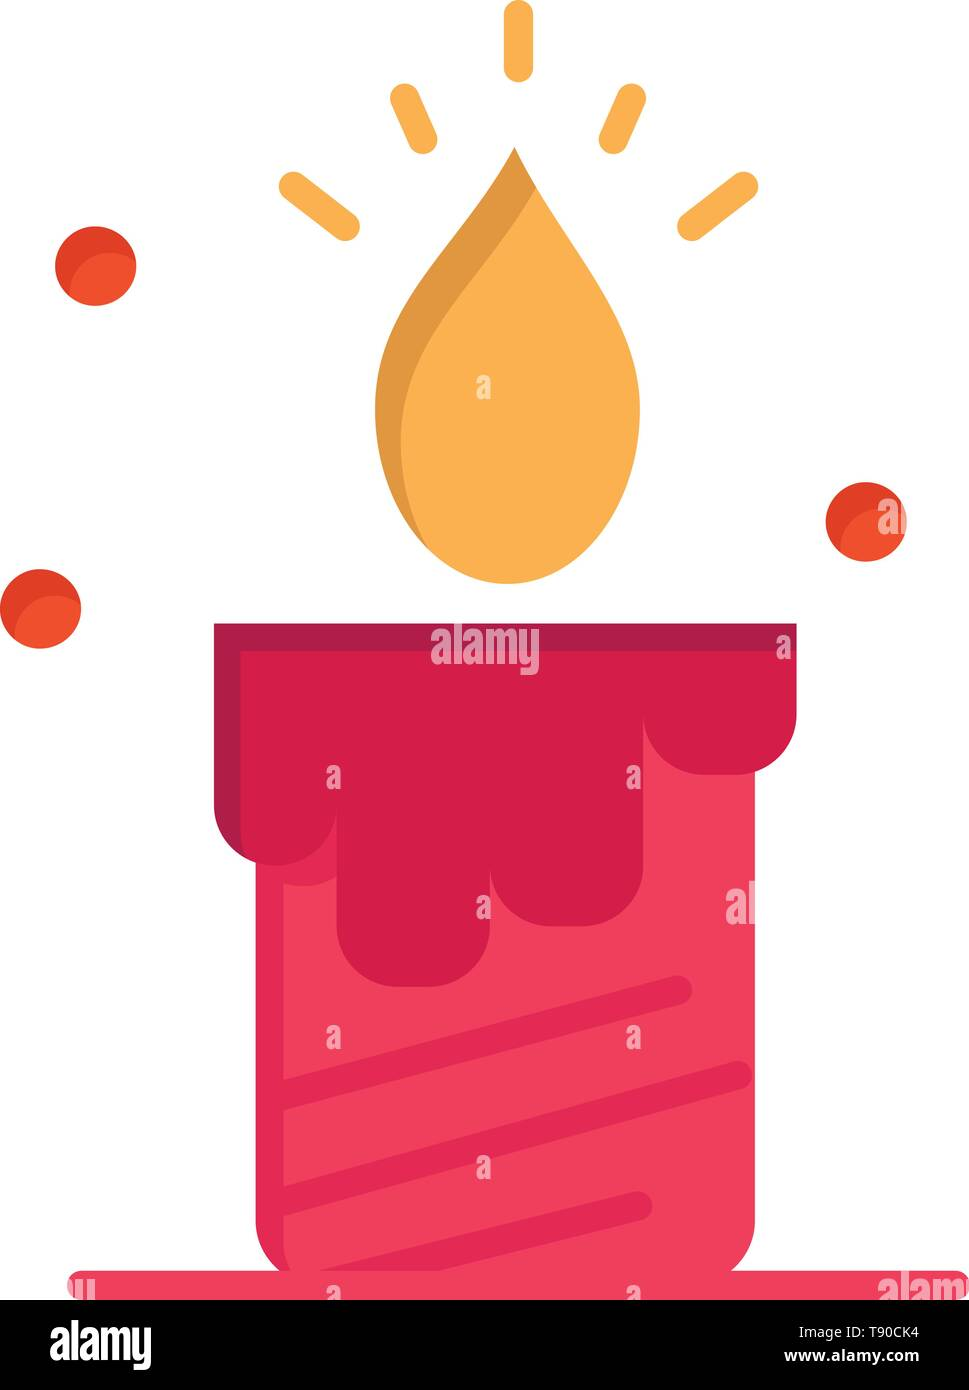 Candle, Light, Wedding, Love  Flat Color Icon. Vector icon banner Template - Stock Image